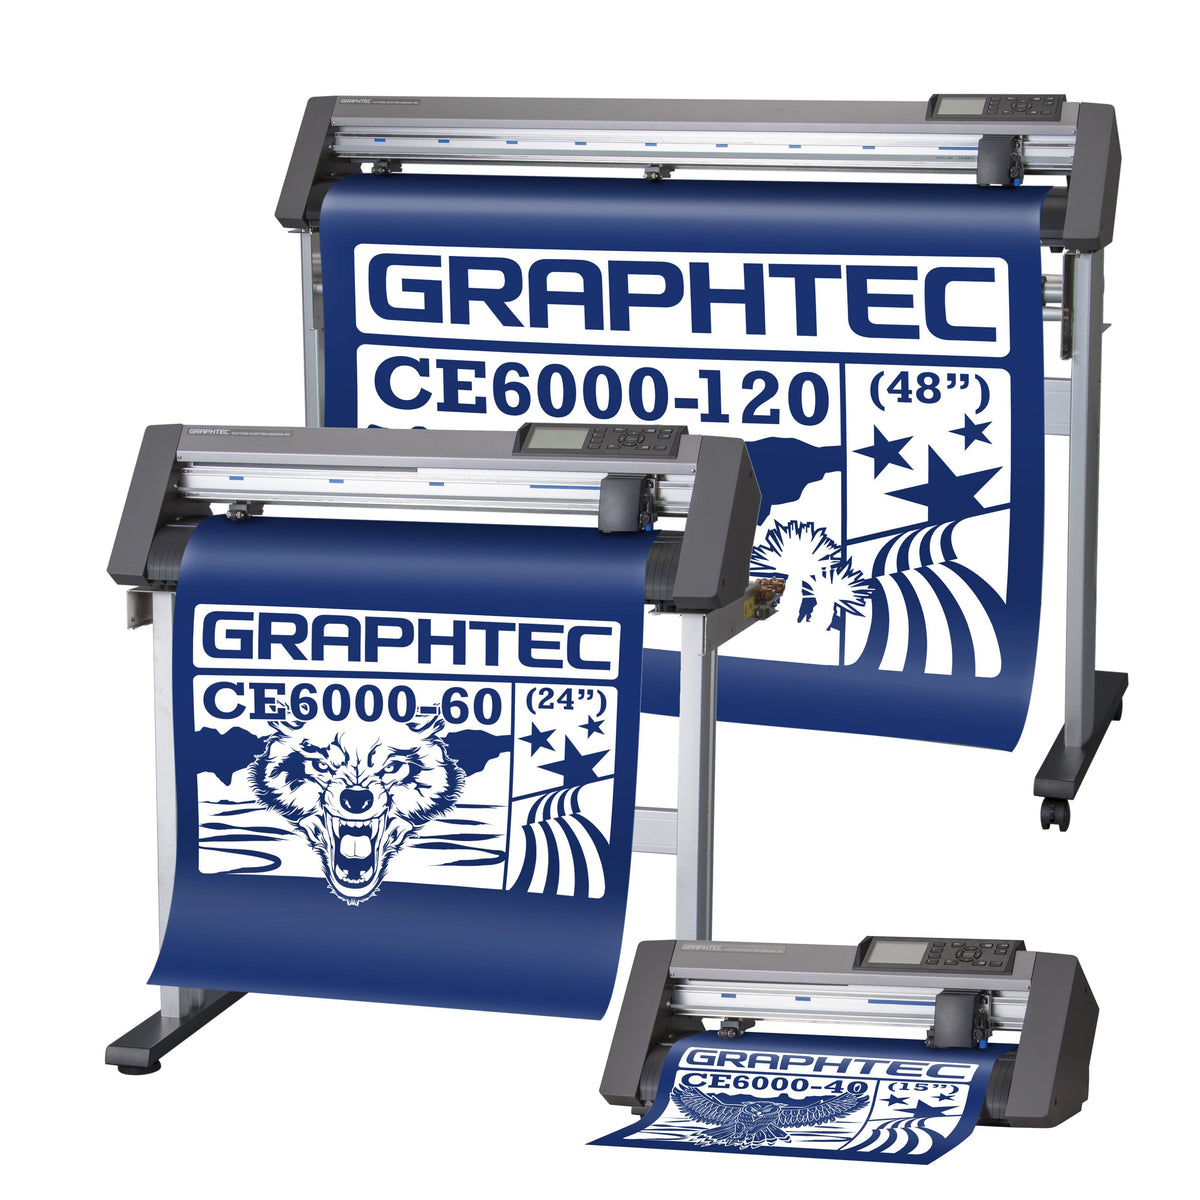 If Your Graphtec is Having Offset Issues